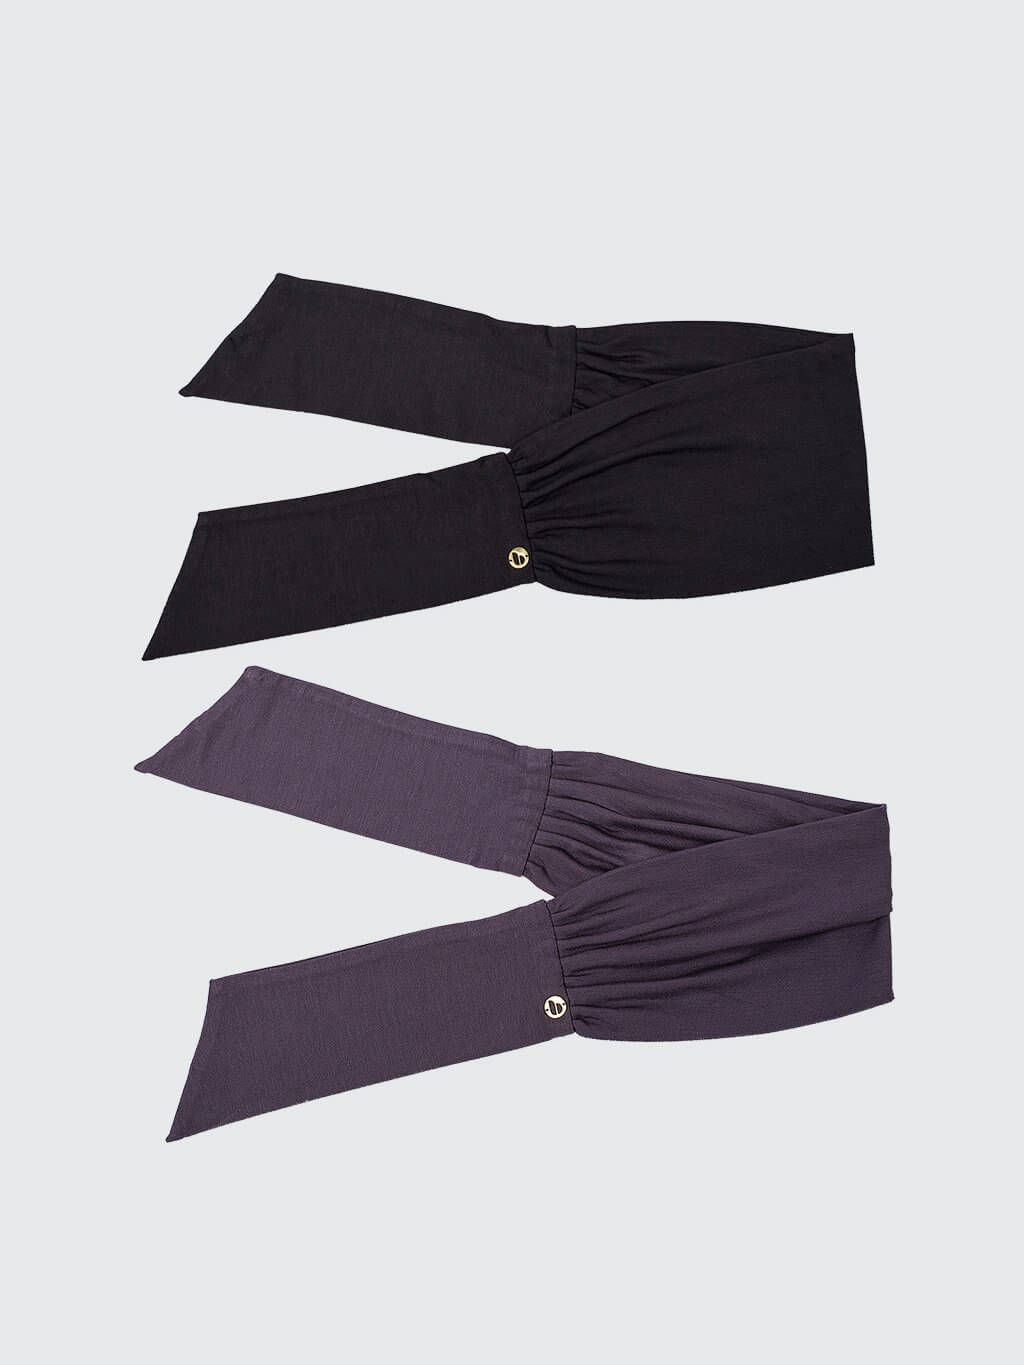 Beau Tie | 2 Pack | Black + Charcoal